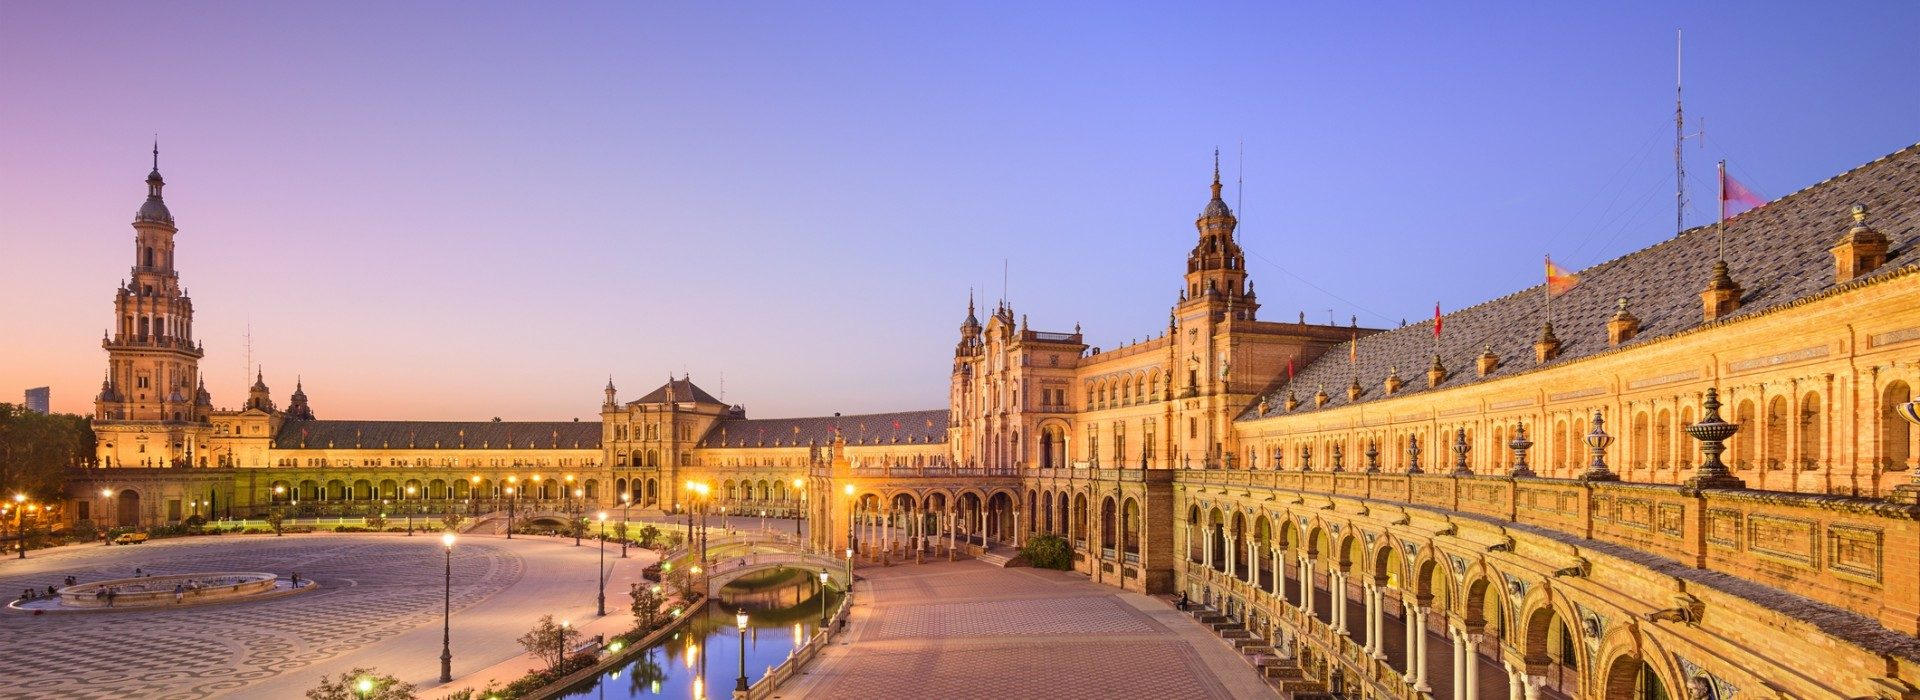 Travelling in Spain - Tours and Vacation Packages